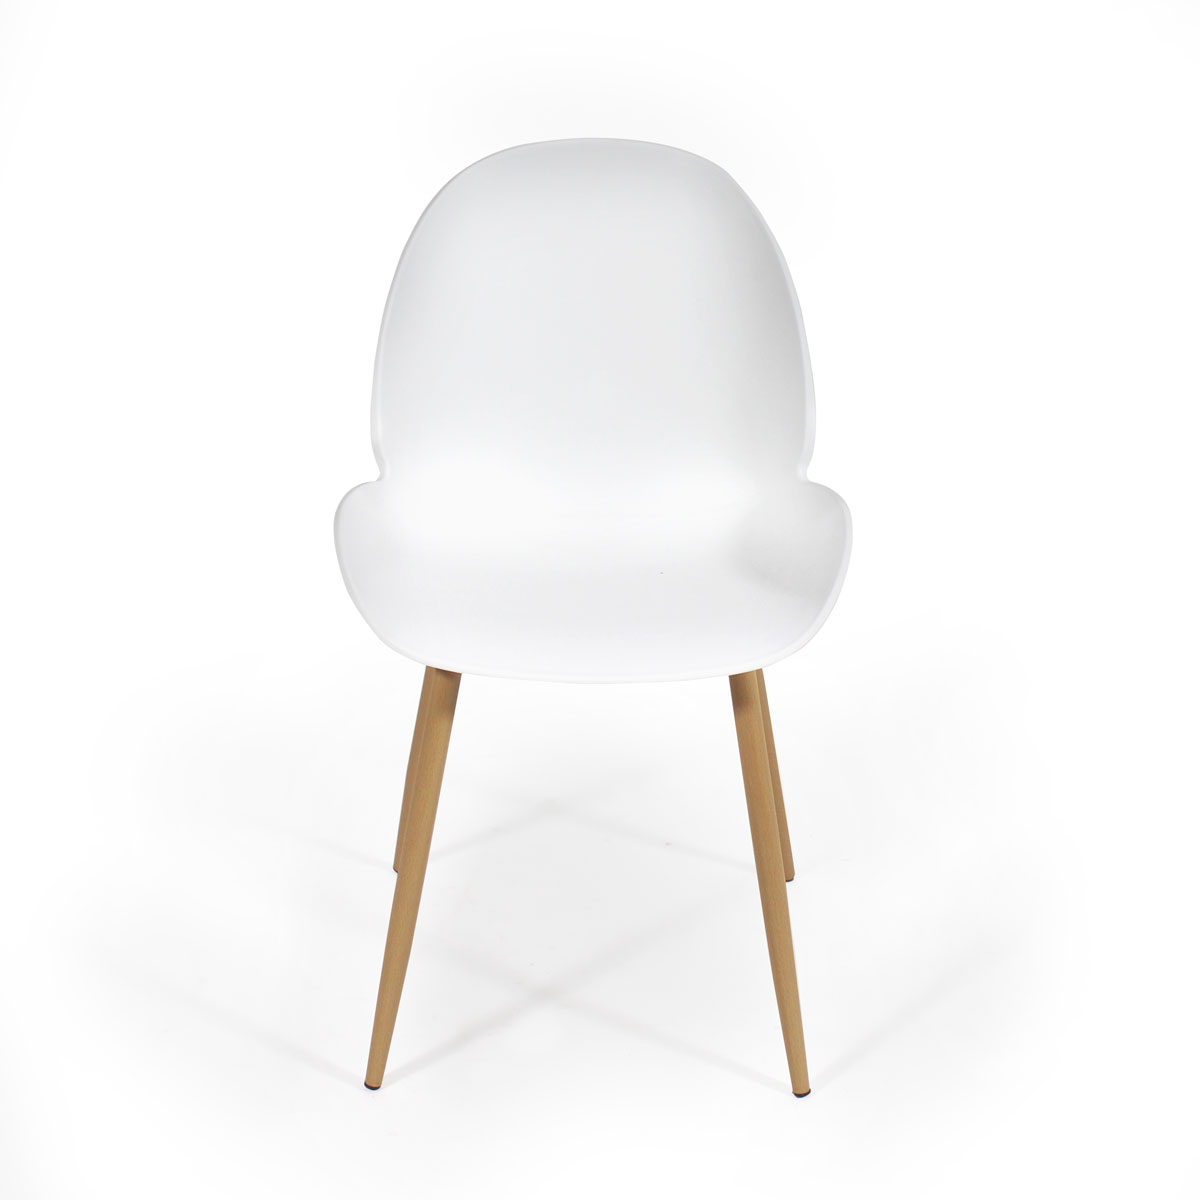 Chaise scandinave blanche moderne